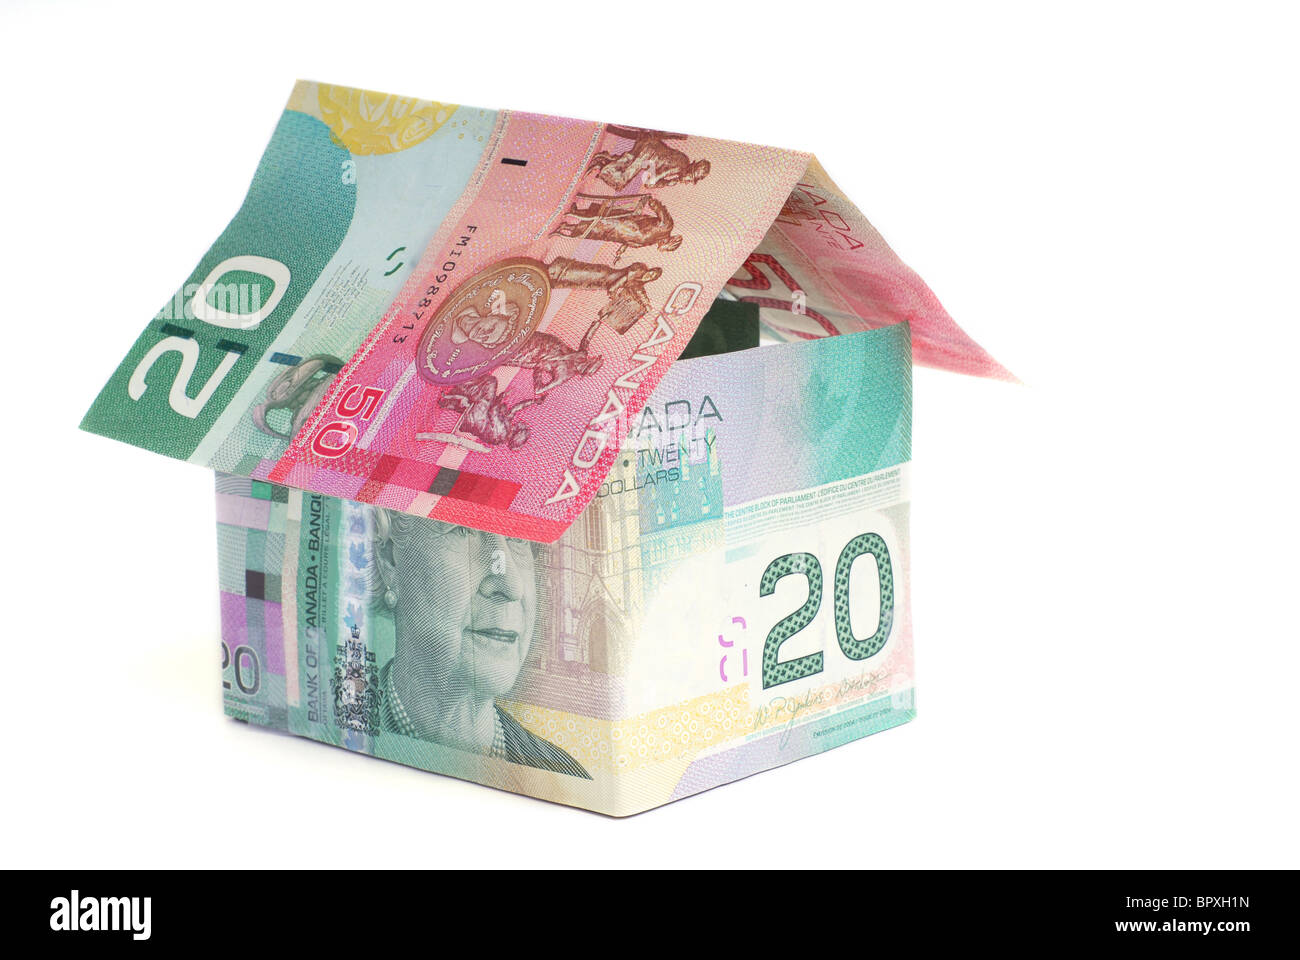 House made of Canadian money - Stock Image